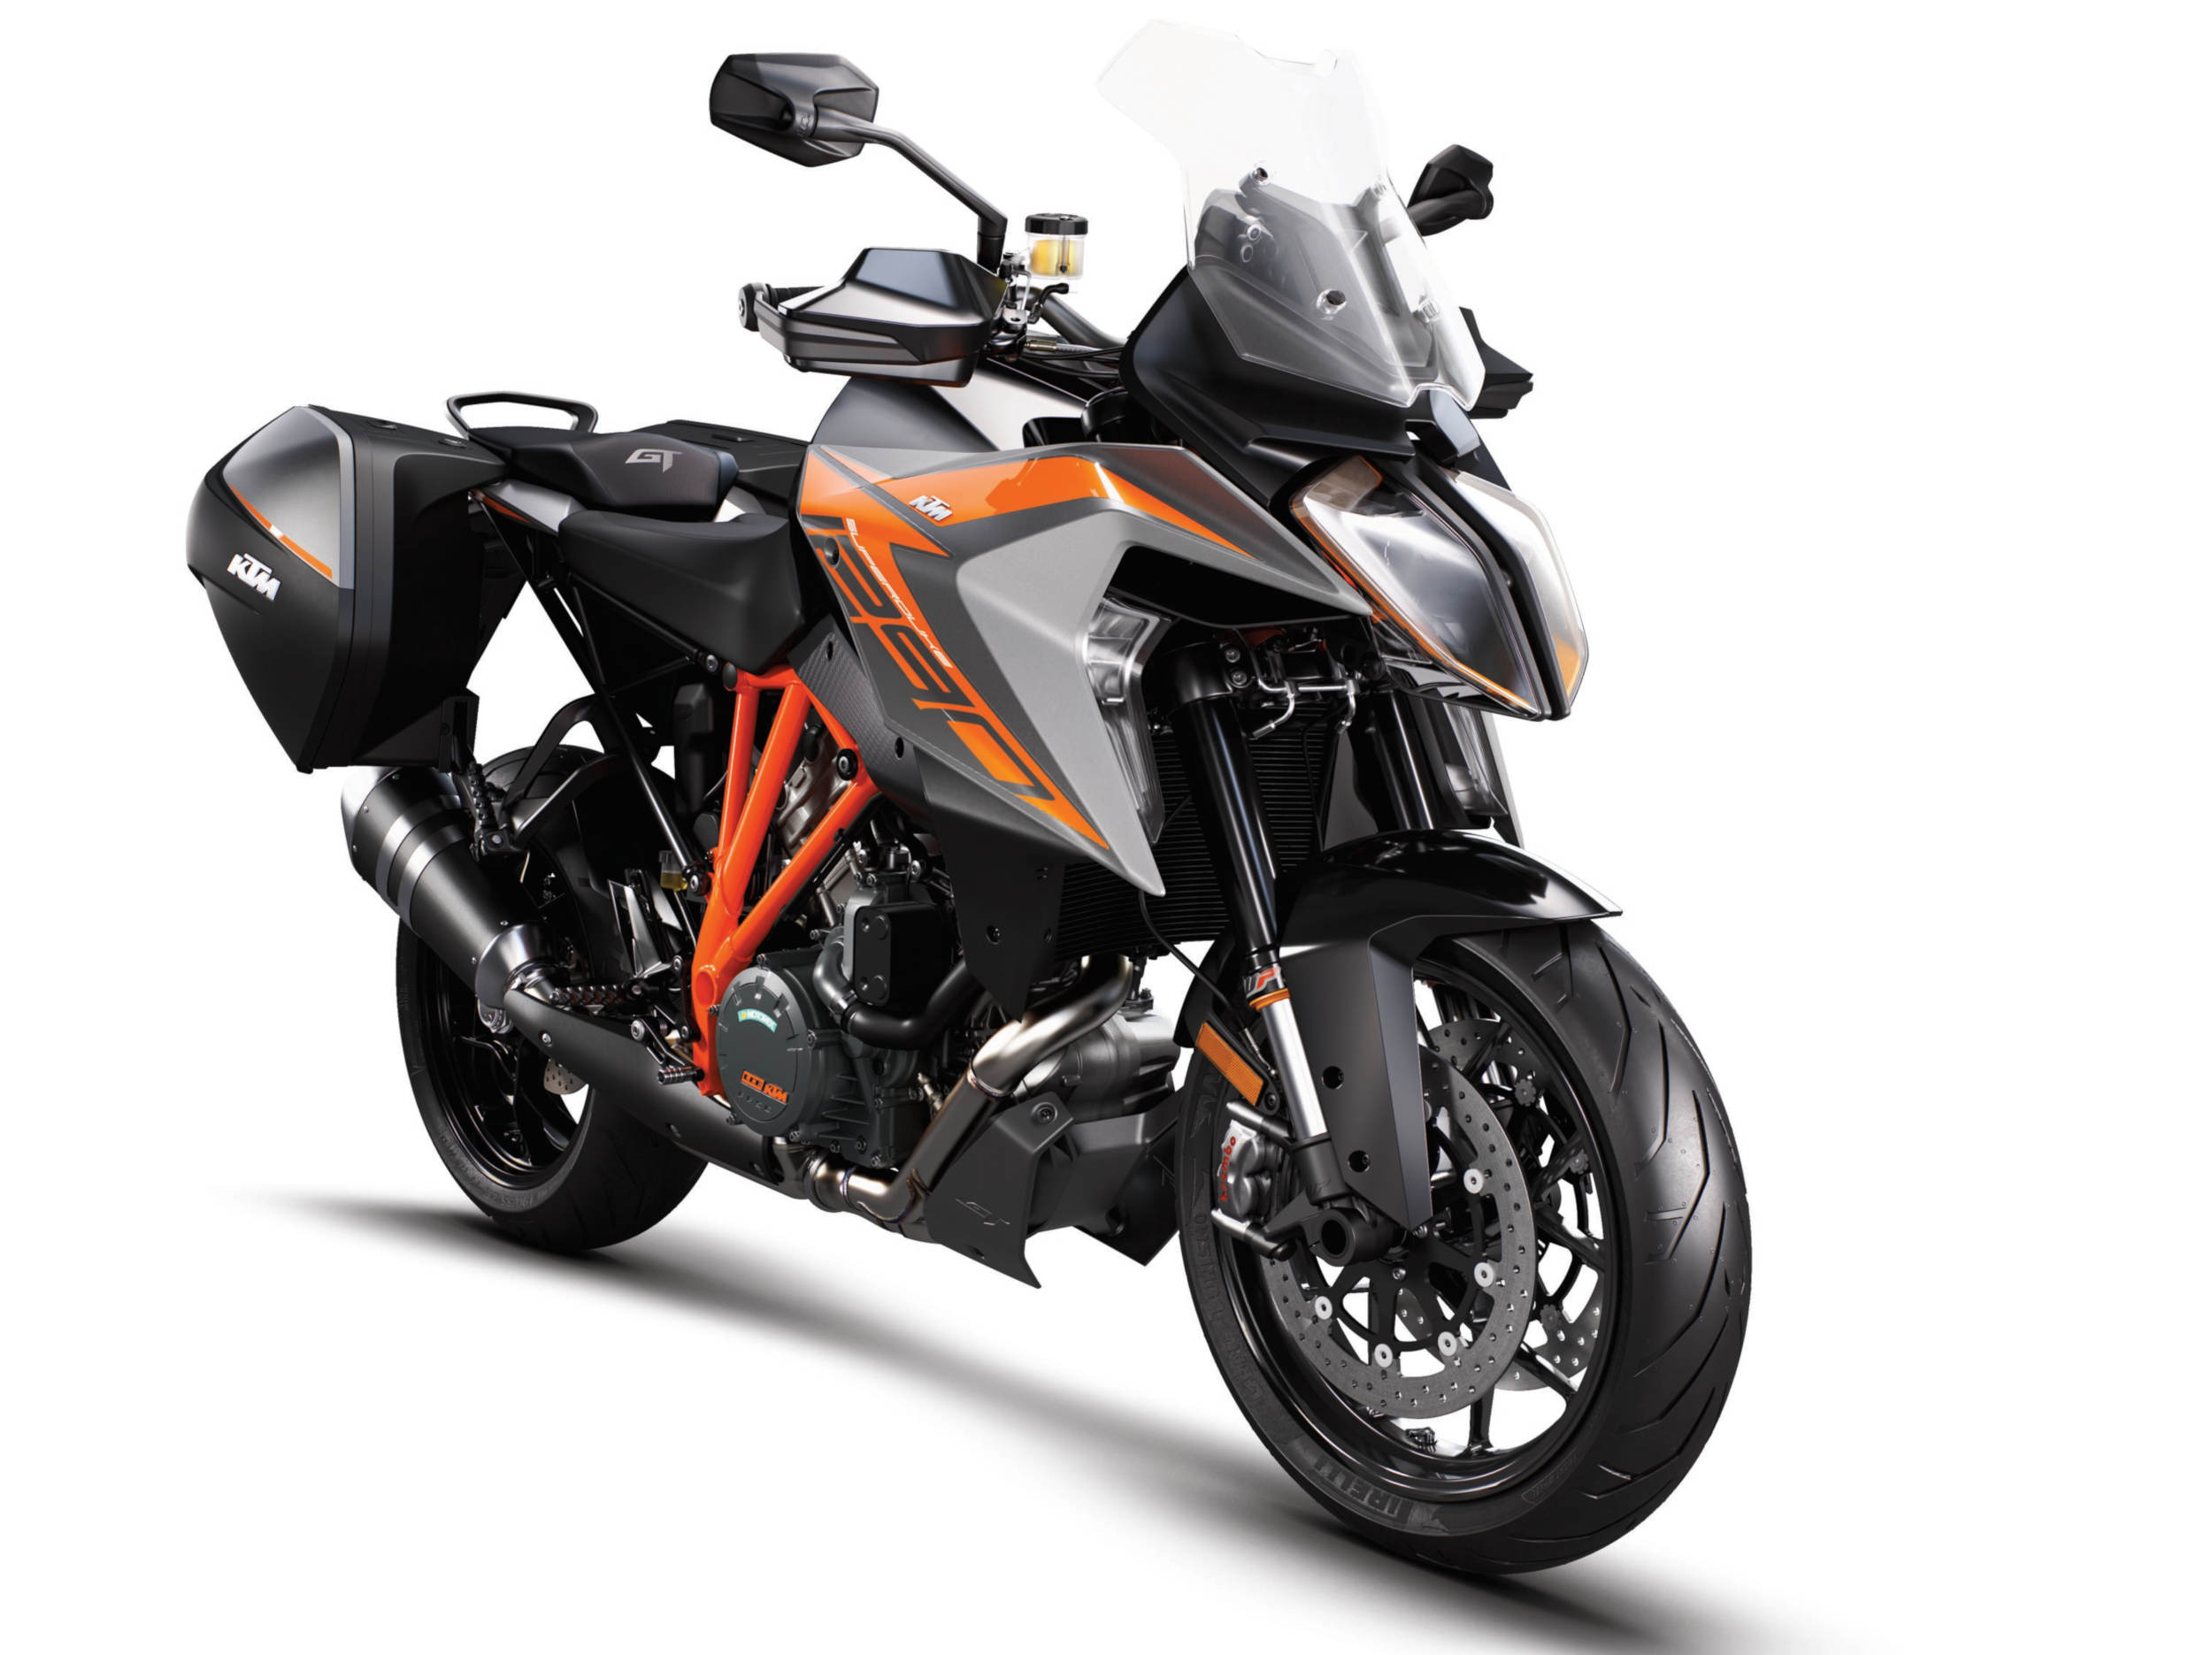 KTM Makes Significant Changes to 2019 1290 Super Duke GT